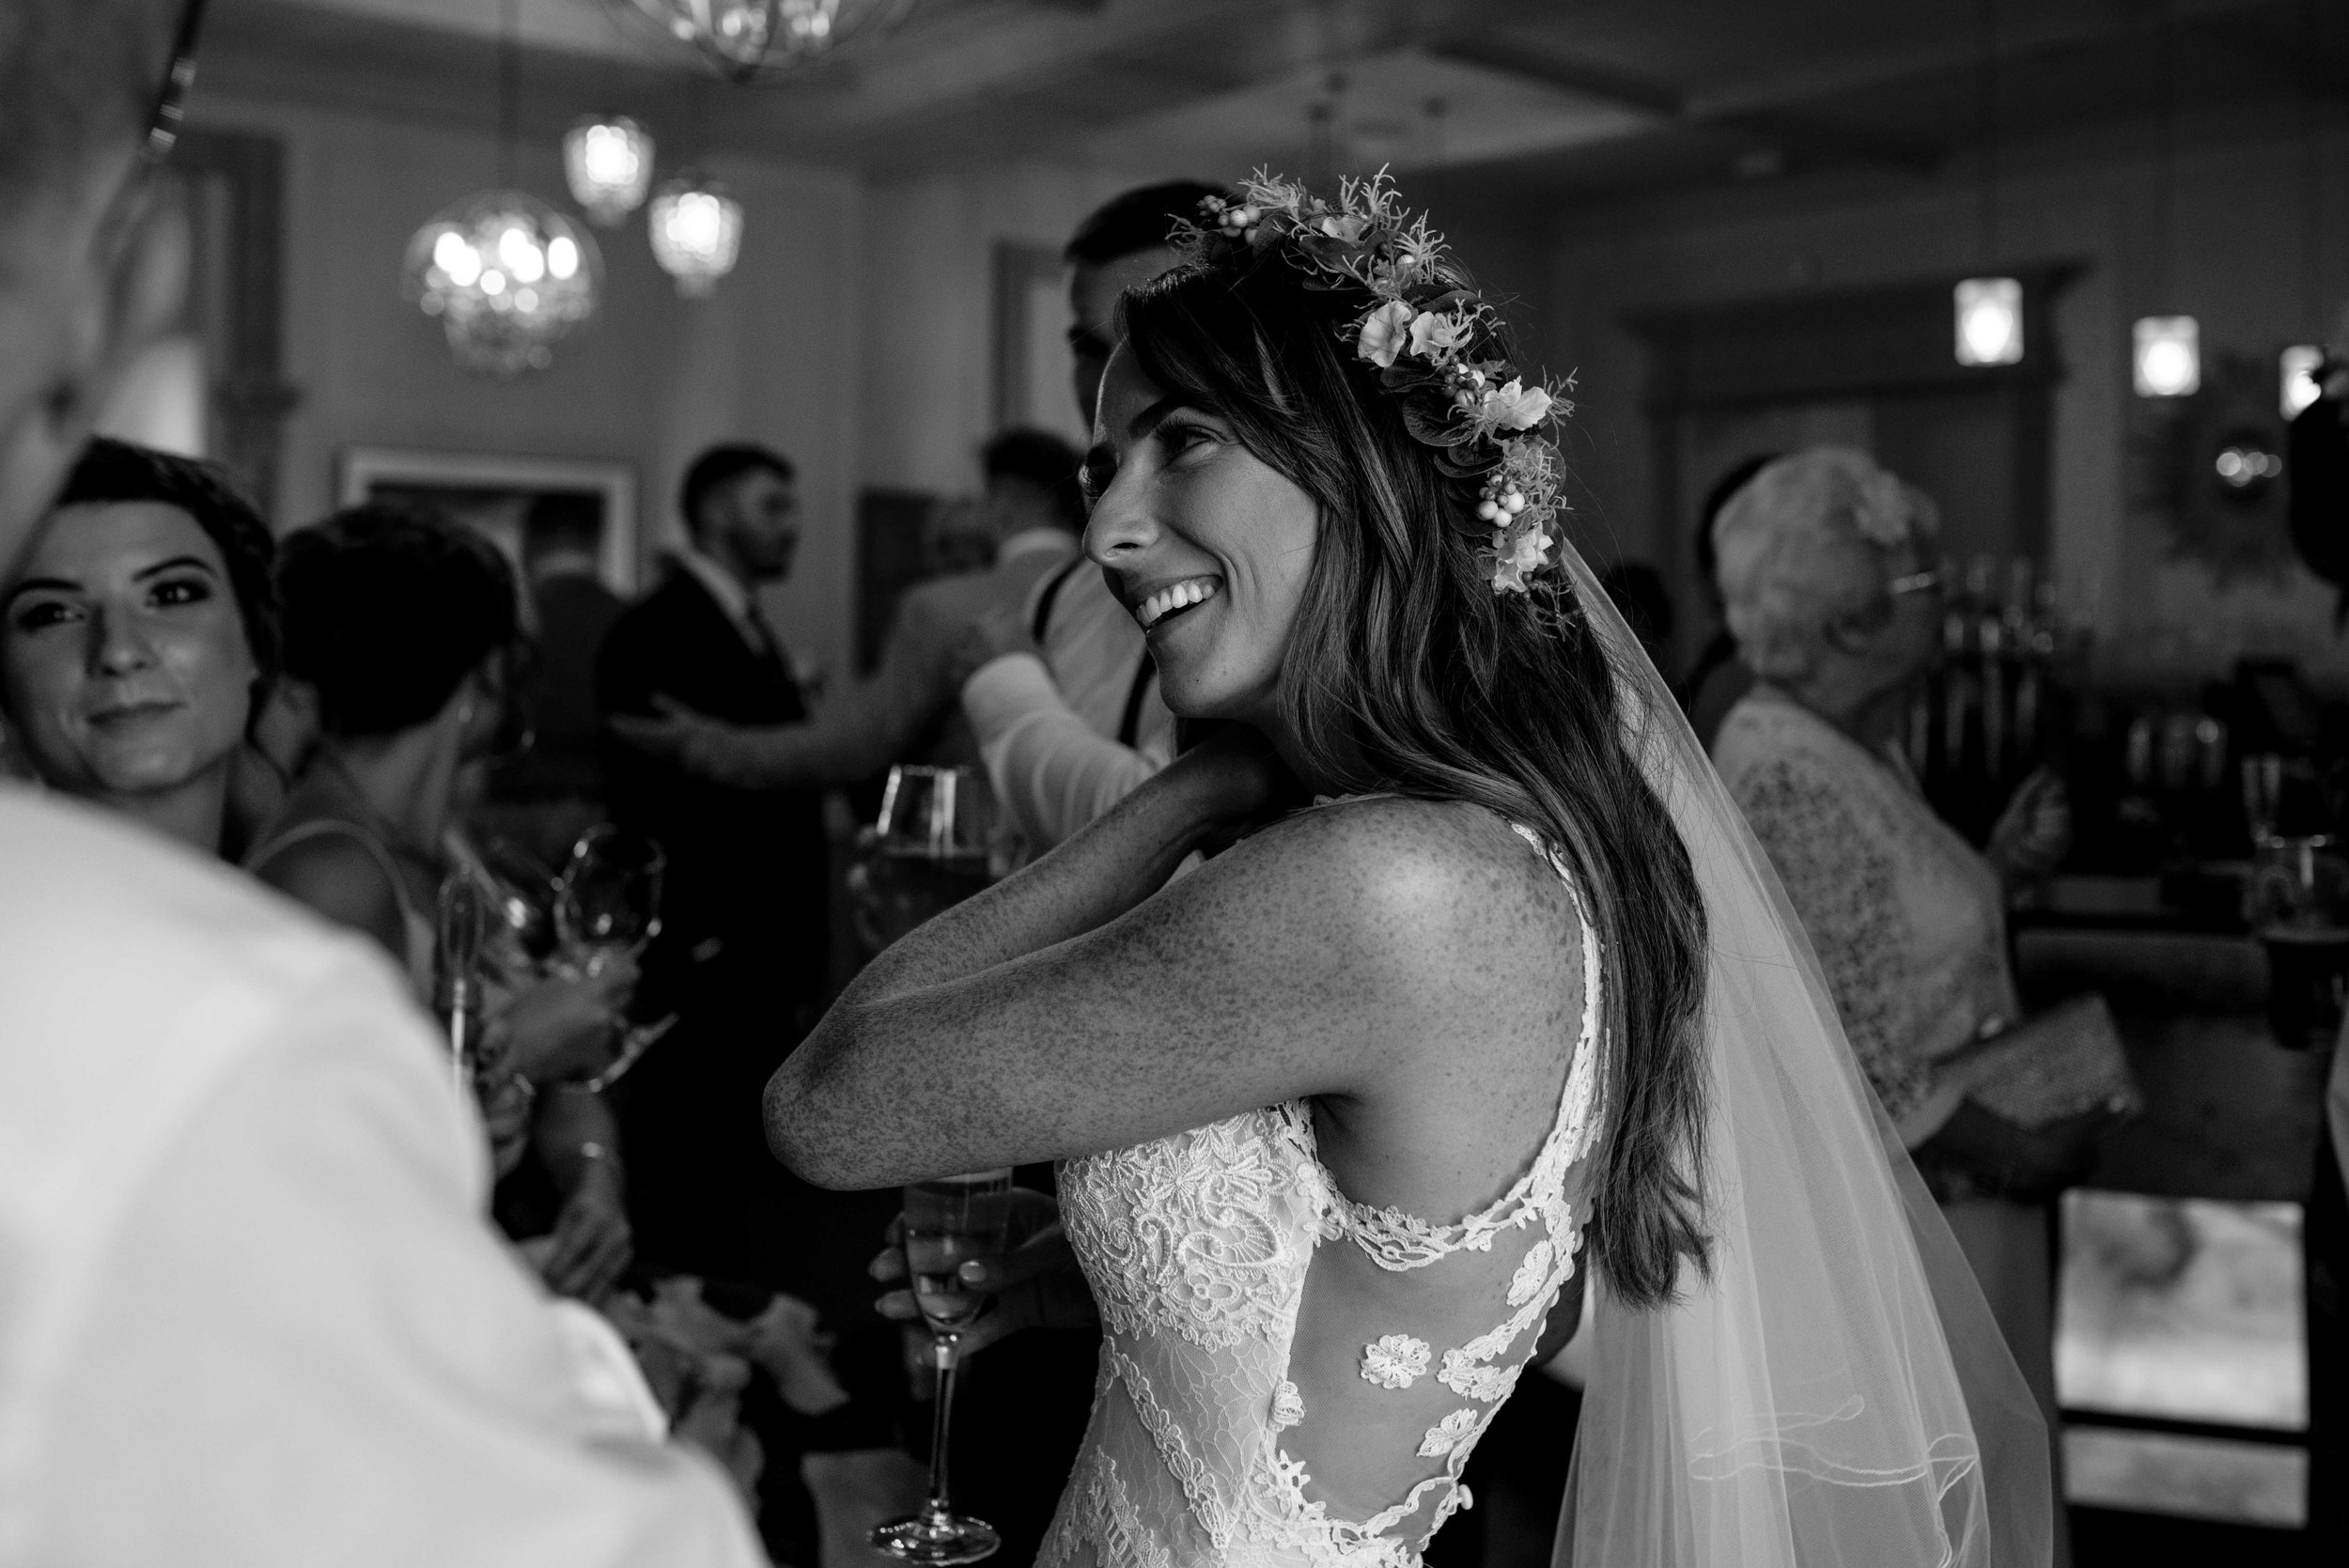 The bride wipes away a laughing tear as she chats to her friends